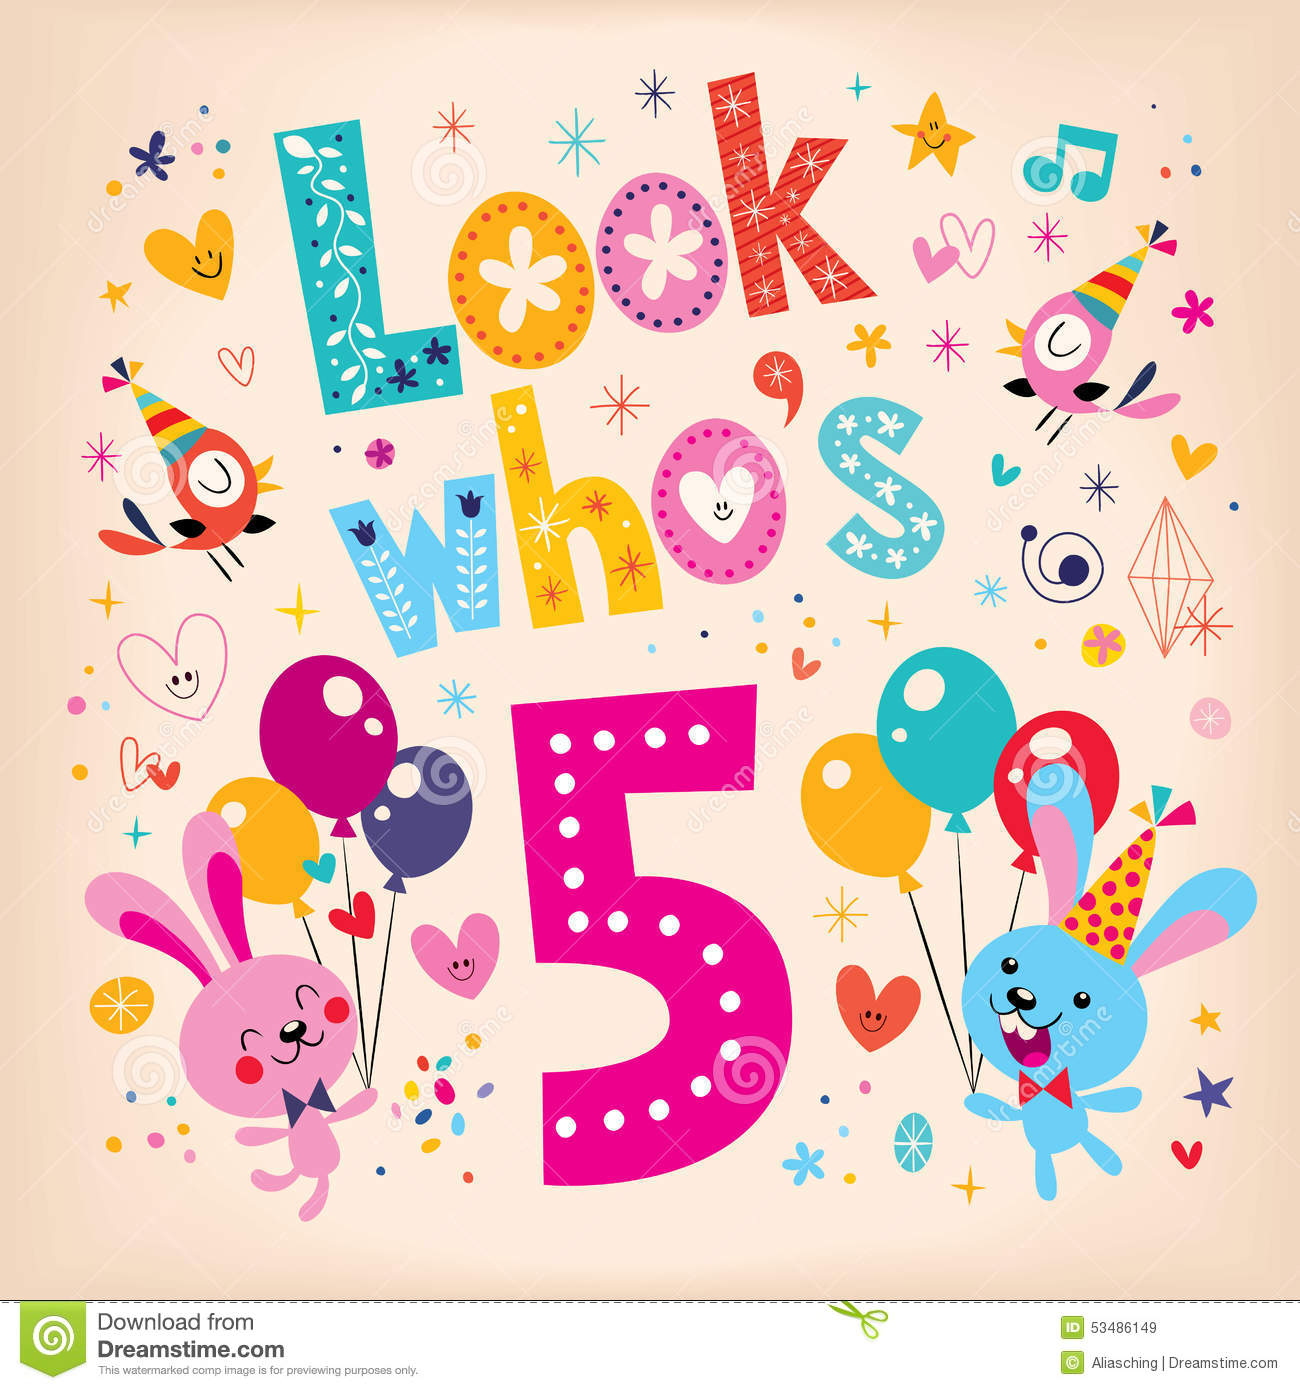 Awosme 5th Birthday Wishes 2016 Birthday Wishes Zone Happy 5th Birthday Wishes For